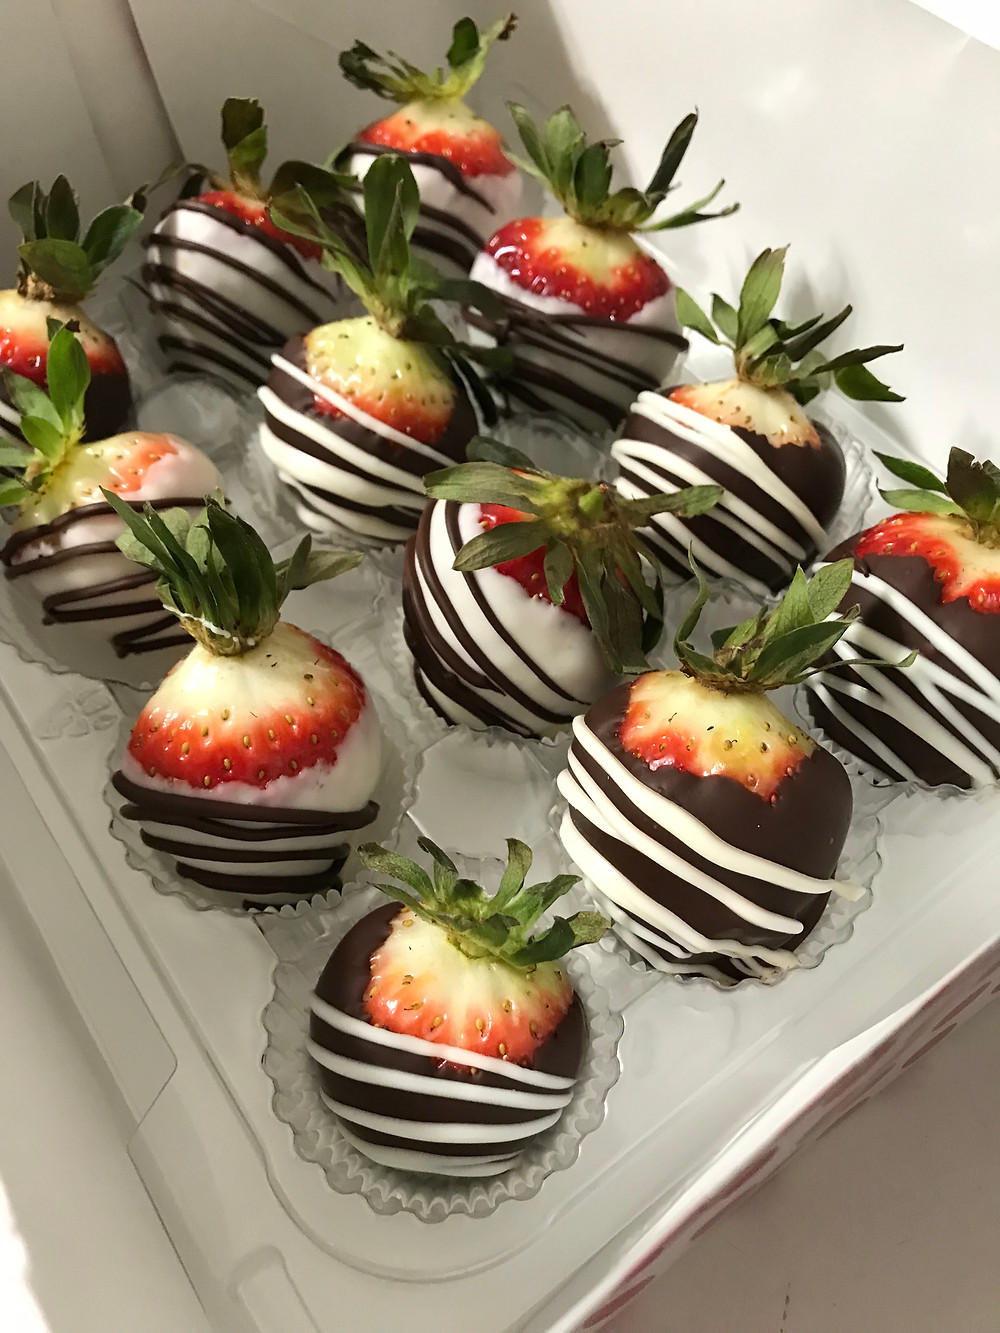 vegan chocolate covered strawberries goddess bodies